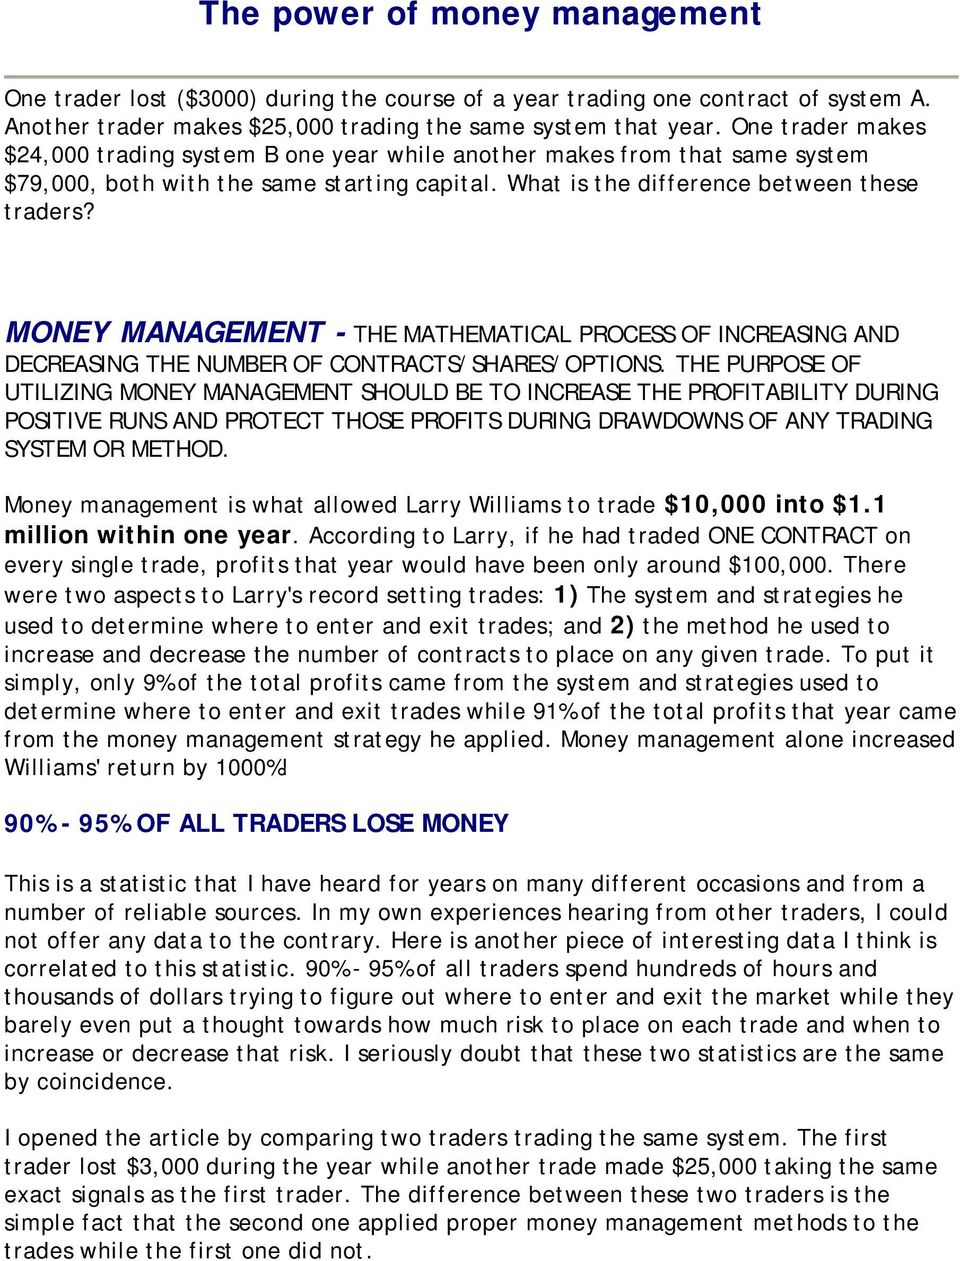 MONEY MANAGEMENT - THE MATHEMATICAL PROCESS OF INCREASING AND DECREASING THE NUMBER OF CONTRACTS/SHARES/OPTIONS.